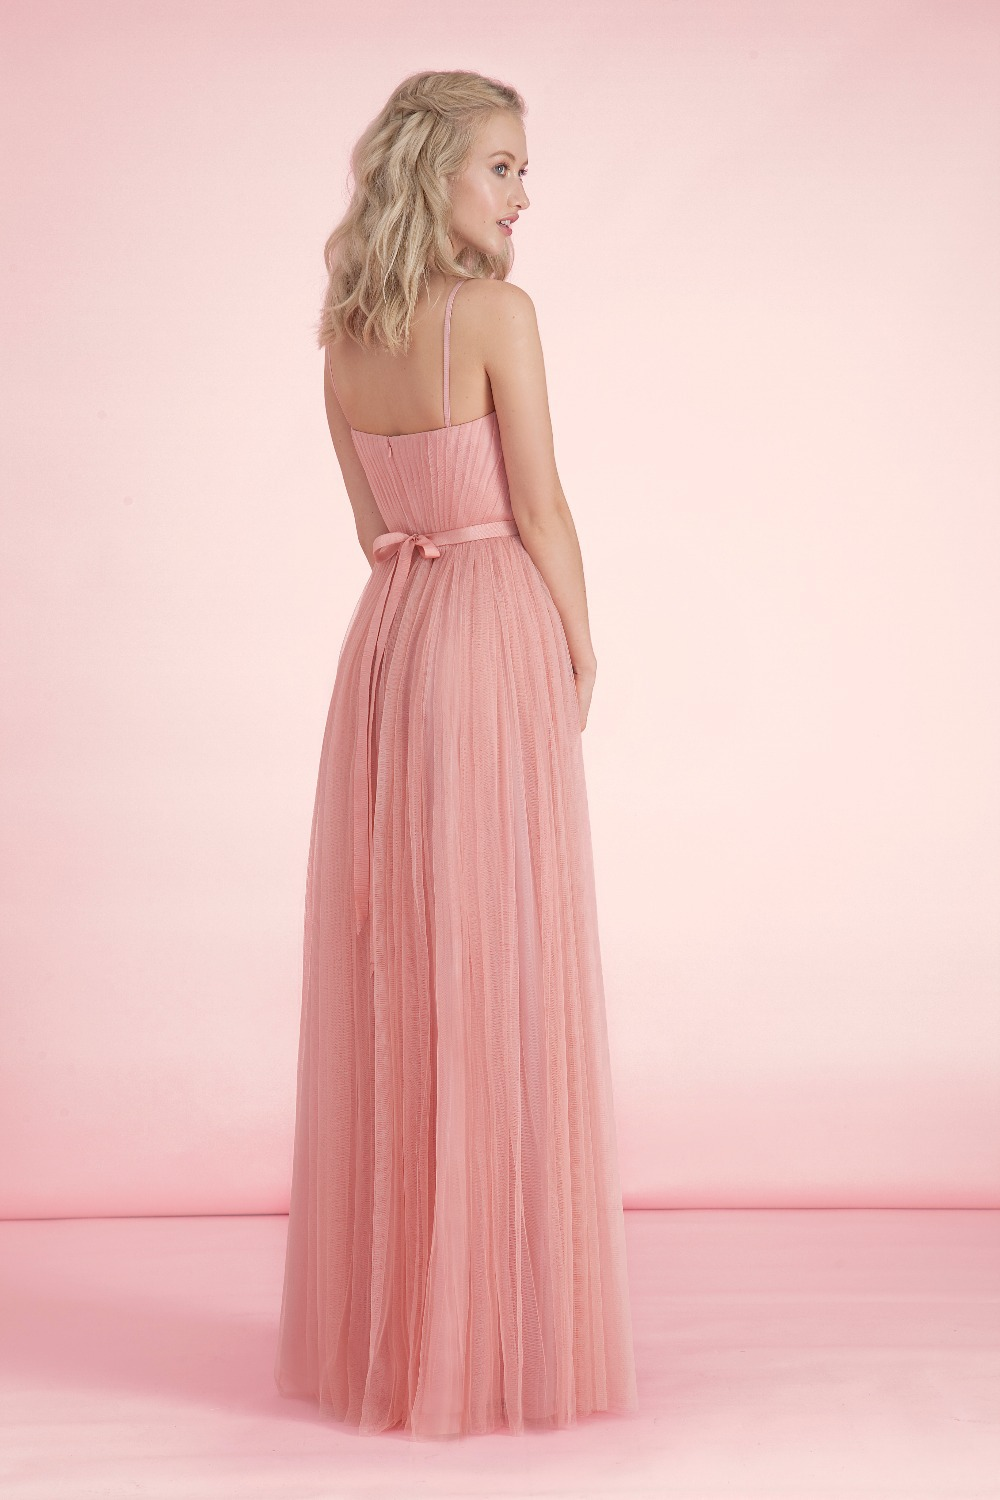 Pastel peach floor length formal goddess gown bridesmaid dresses pastel peach floor length formal goddess gown bridesmaid dresses long a line spaghetti strap wedding guest dress custom klr10 in bridesmaid dresses from ombrellifo Image collections